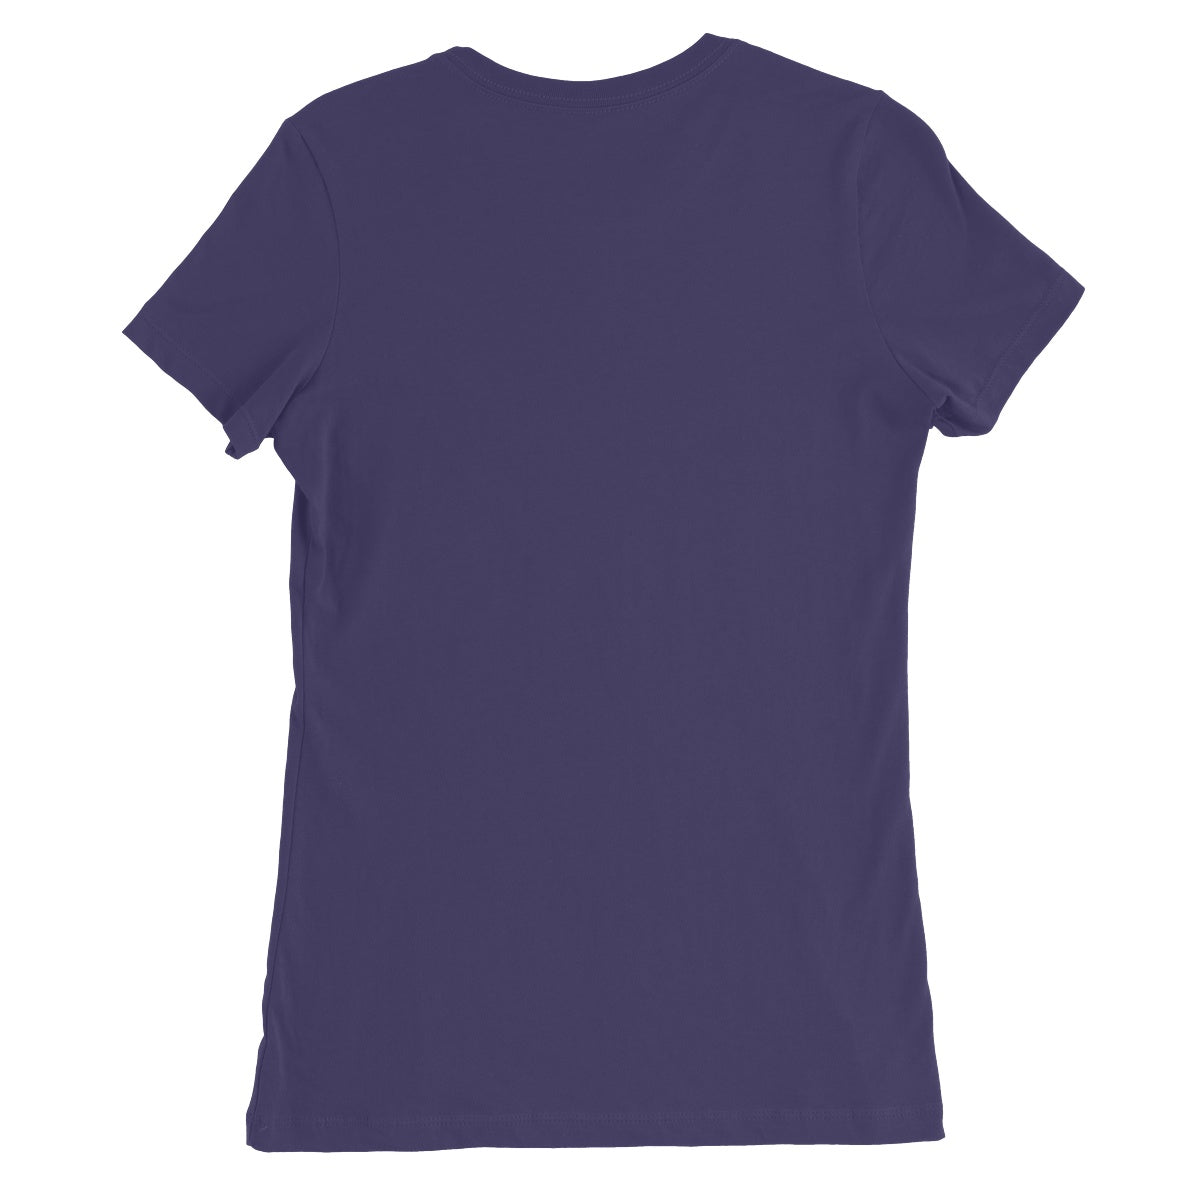 Event Day Women's Favourite T-Shirt